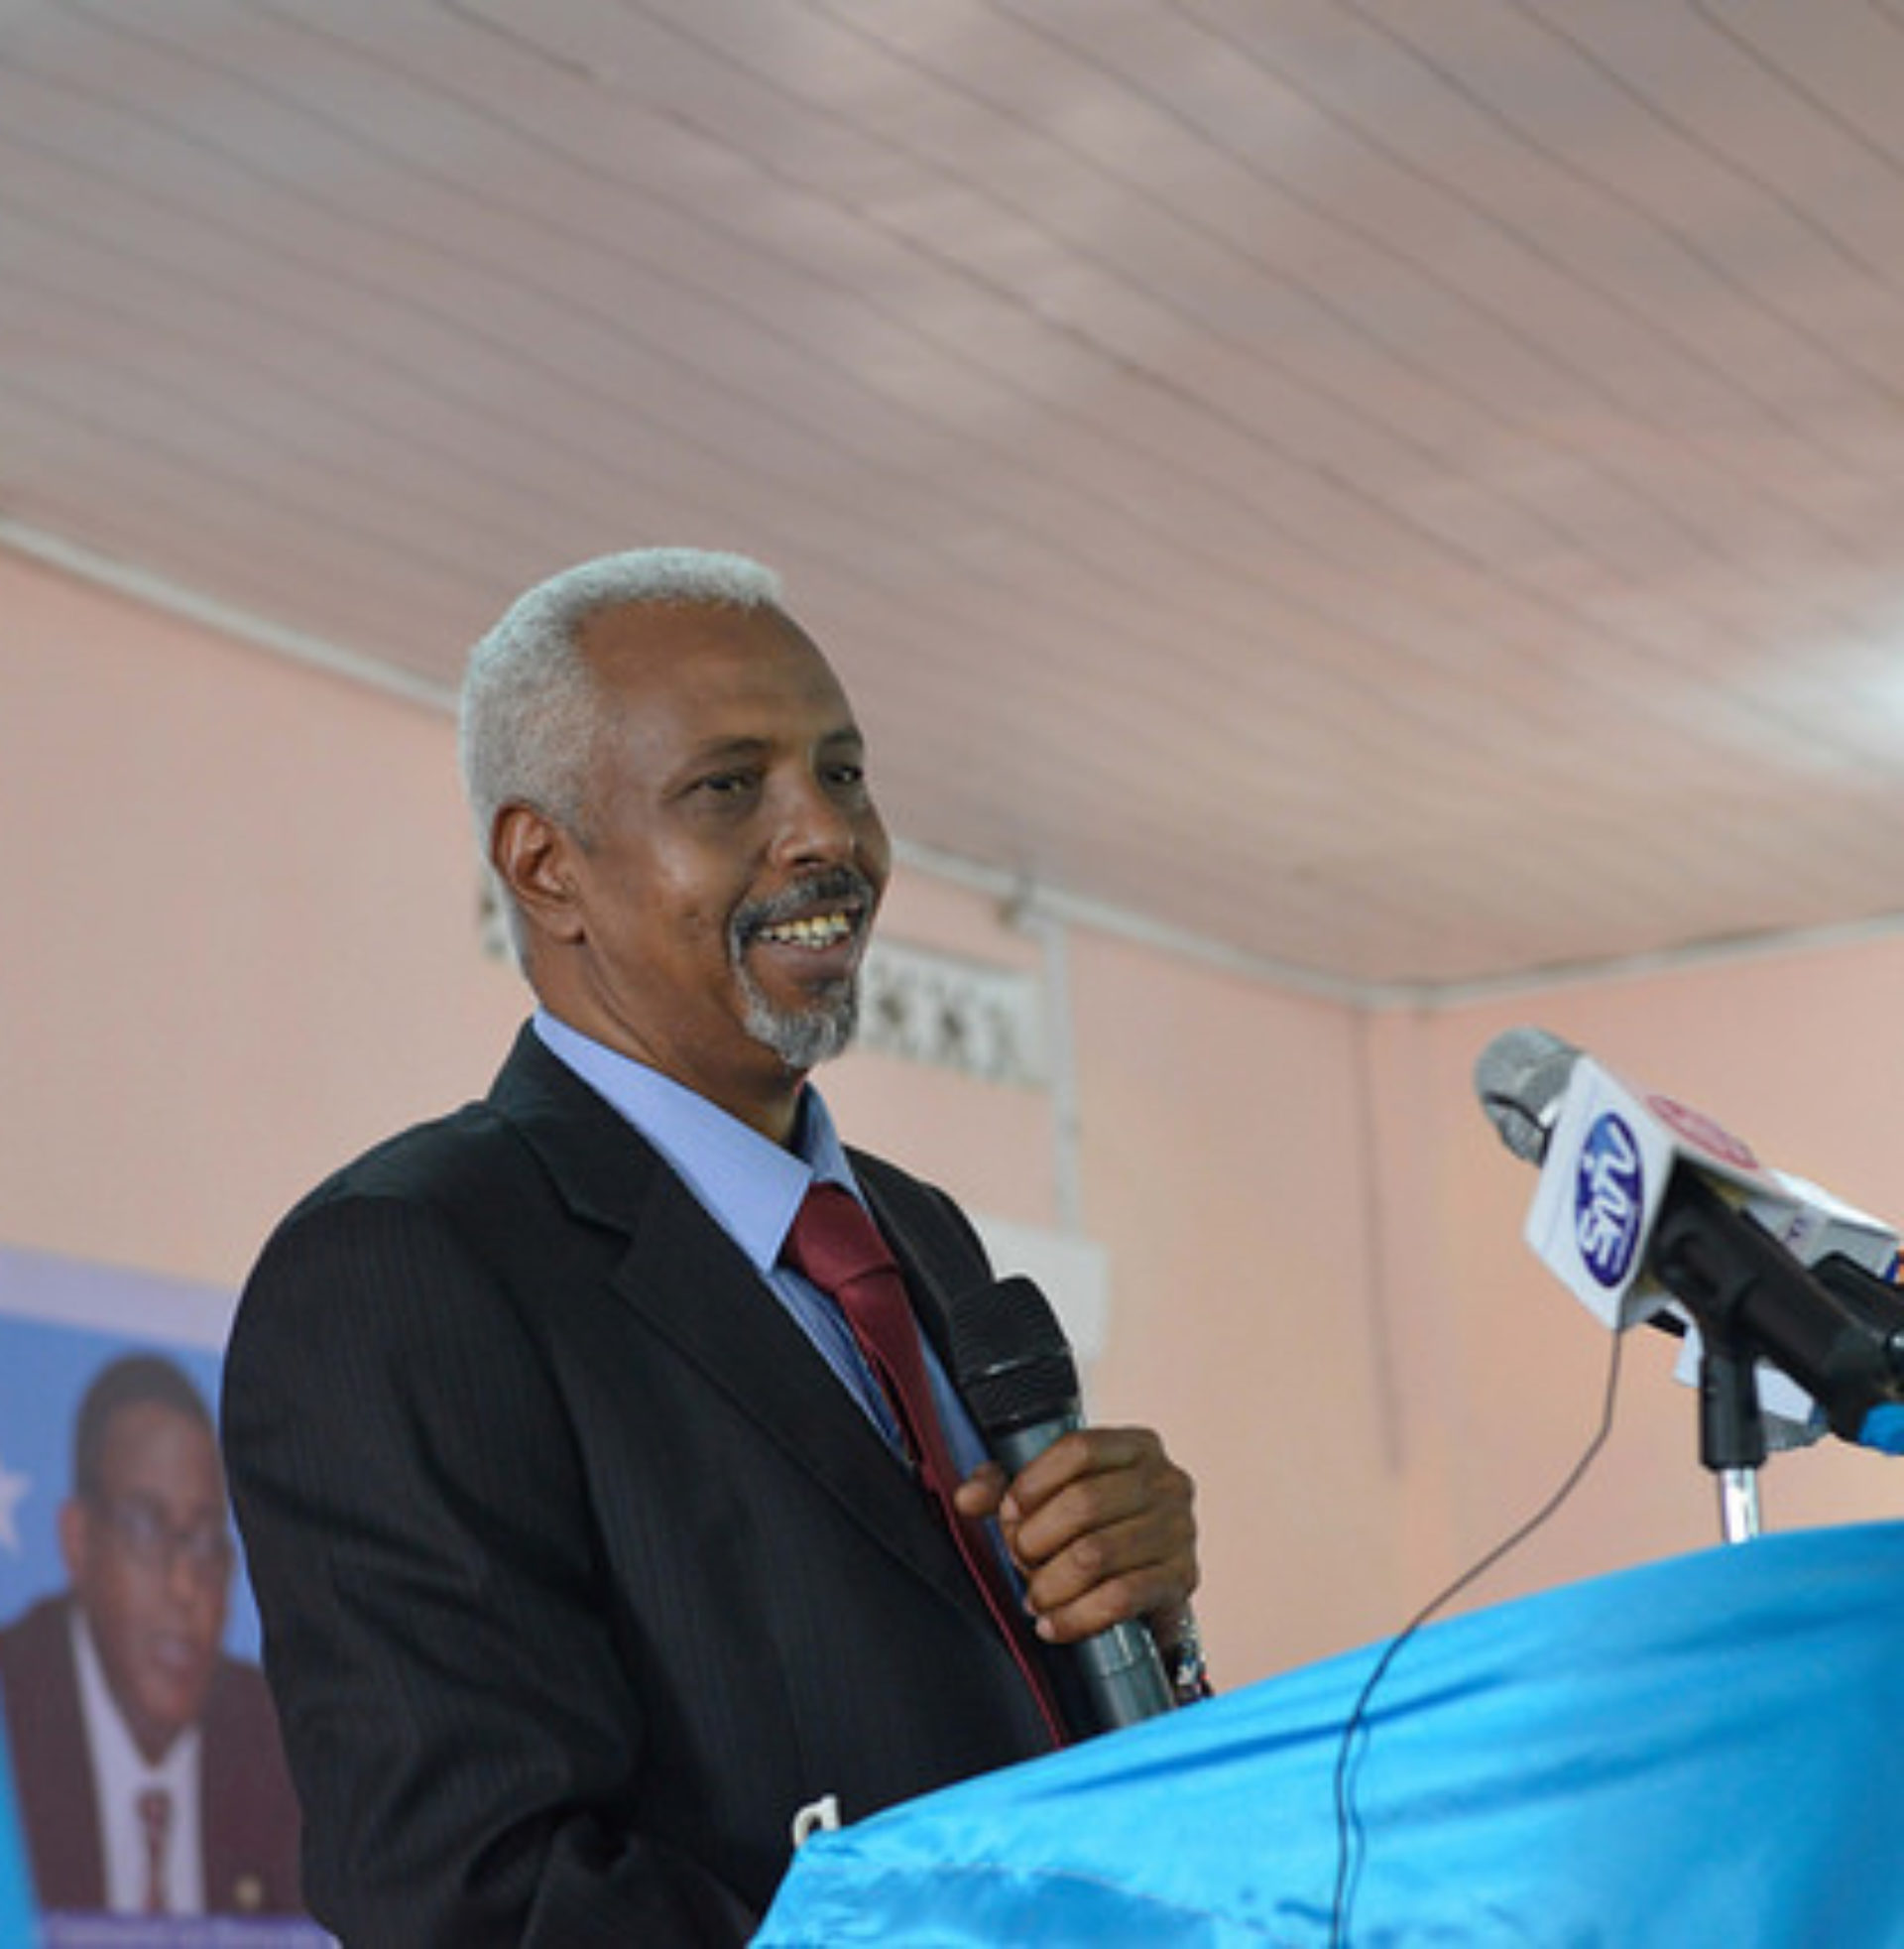 The-President-of-the-newly-formed-HirShabelle-Administration-Ali-Abdullahi-Osoble-addresses-guests-during-his-inauguration-ceremony-held-in-Jowhar-on-October-22-2016.-UN-Photo-Ilyas-Ahmed-1920x1965.jpg